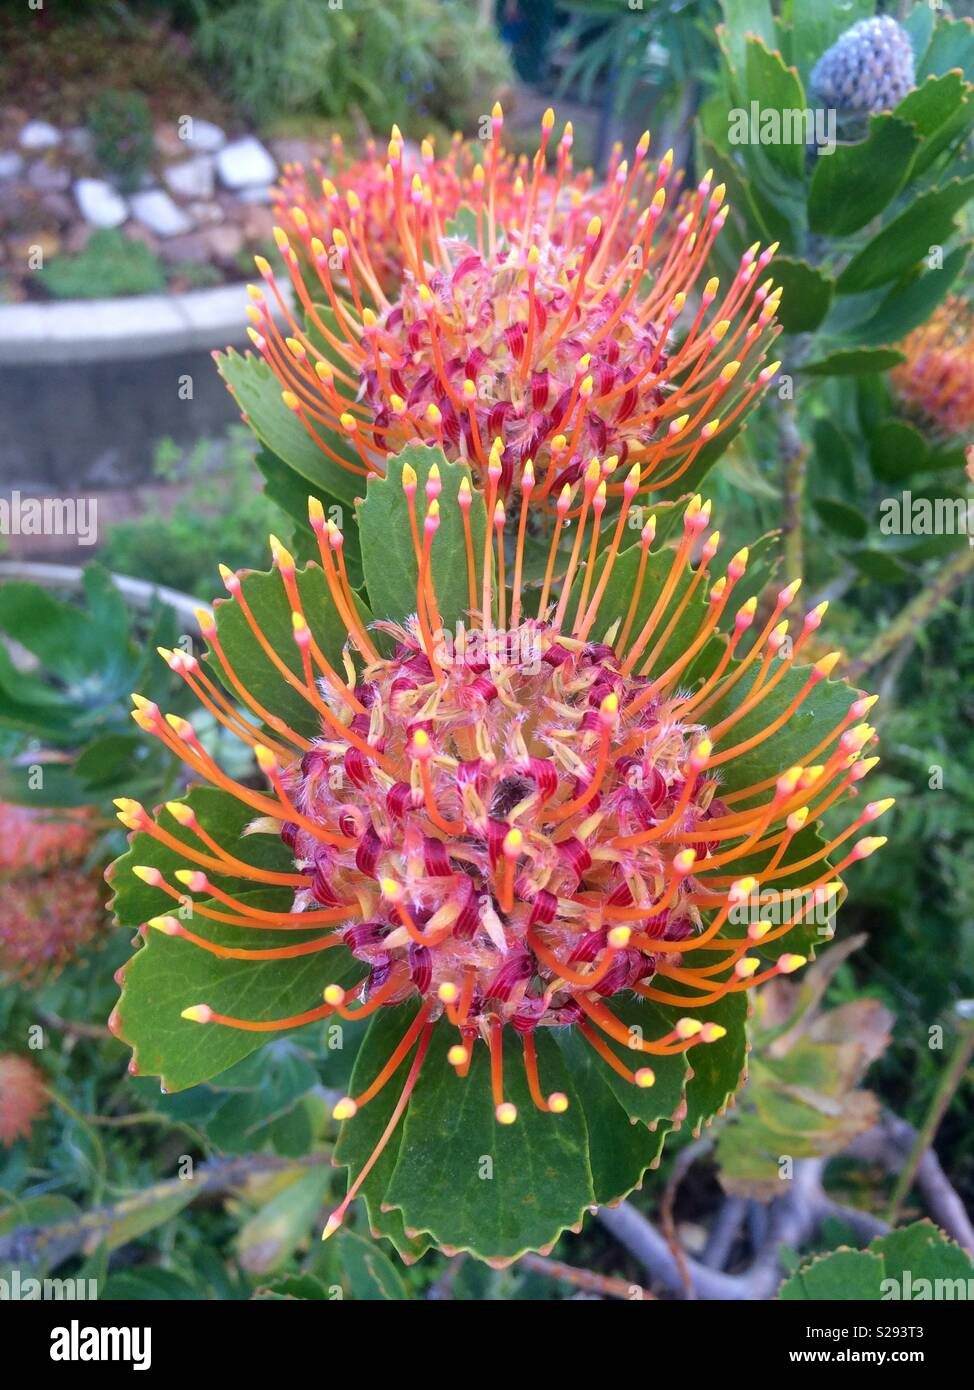 Portrait Of Pincushion Protea Flowers In Full Bloom On Plant During